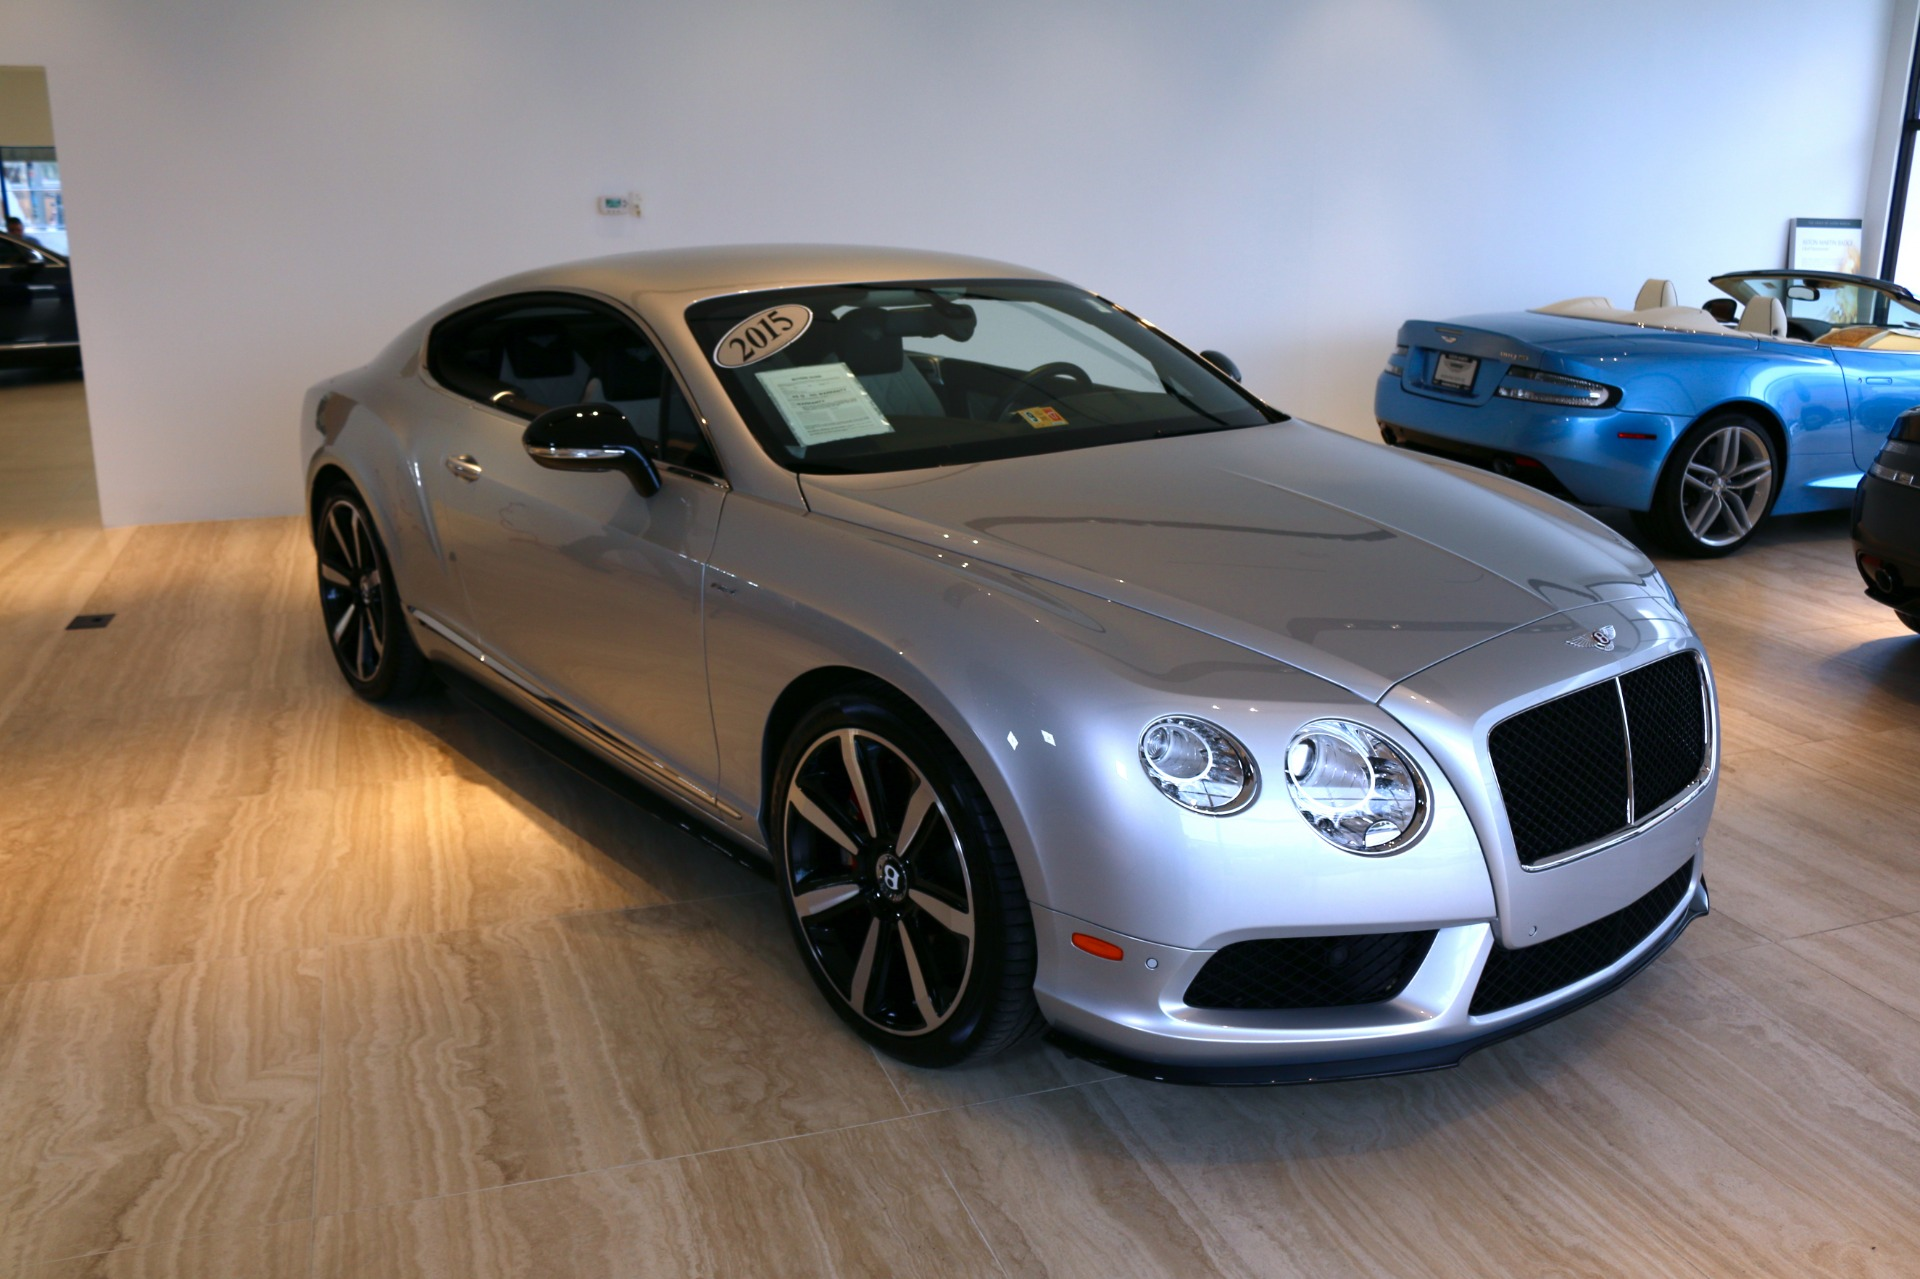 gt htm stock for vienna cars used pre sale c bentley l main va owned near continental